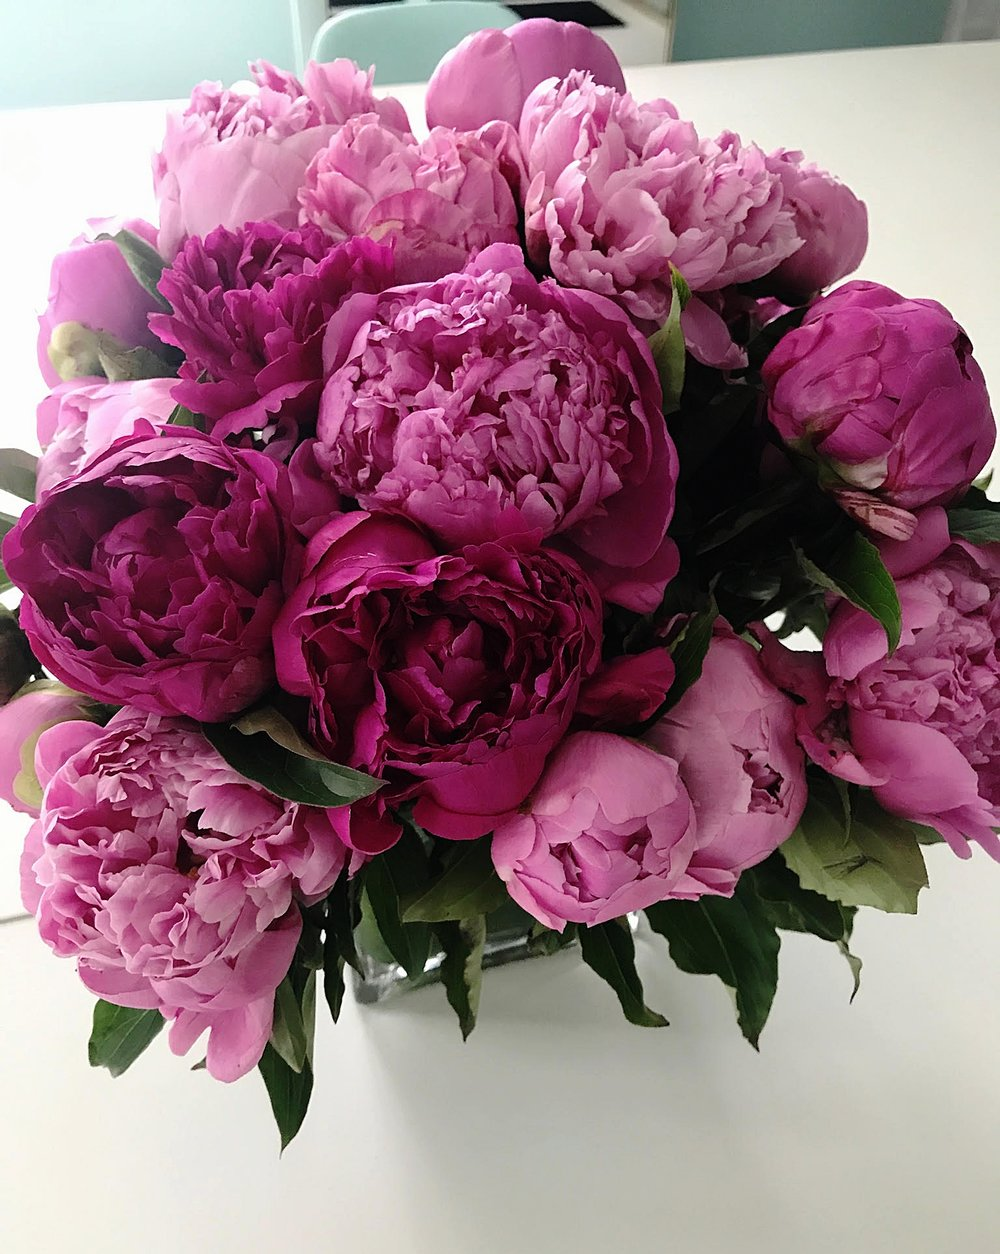 Arrangement_pinkpeony.jpg